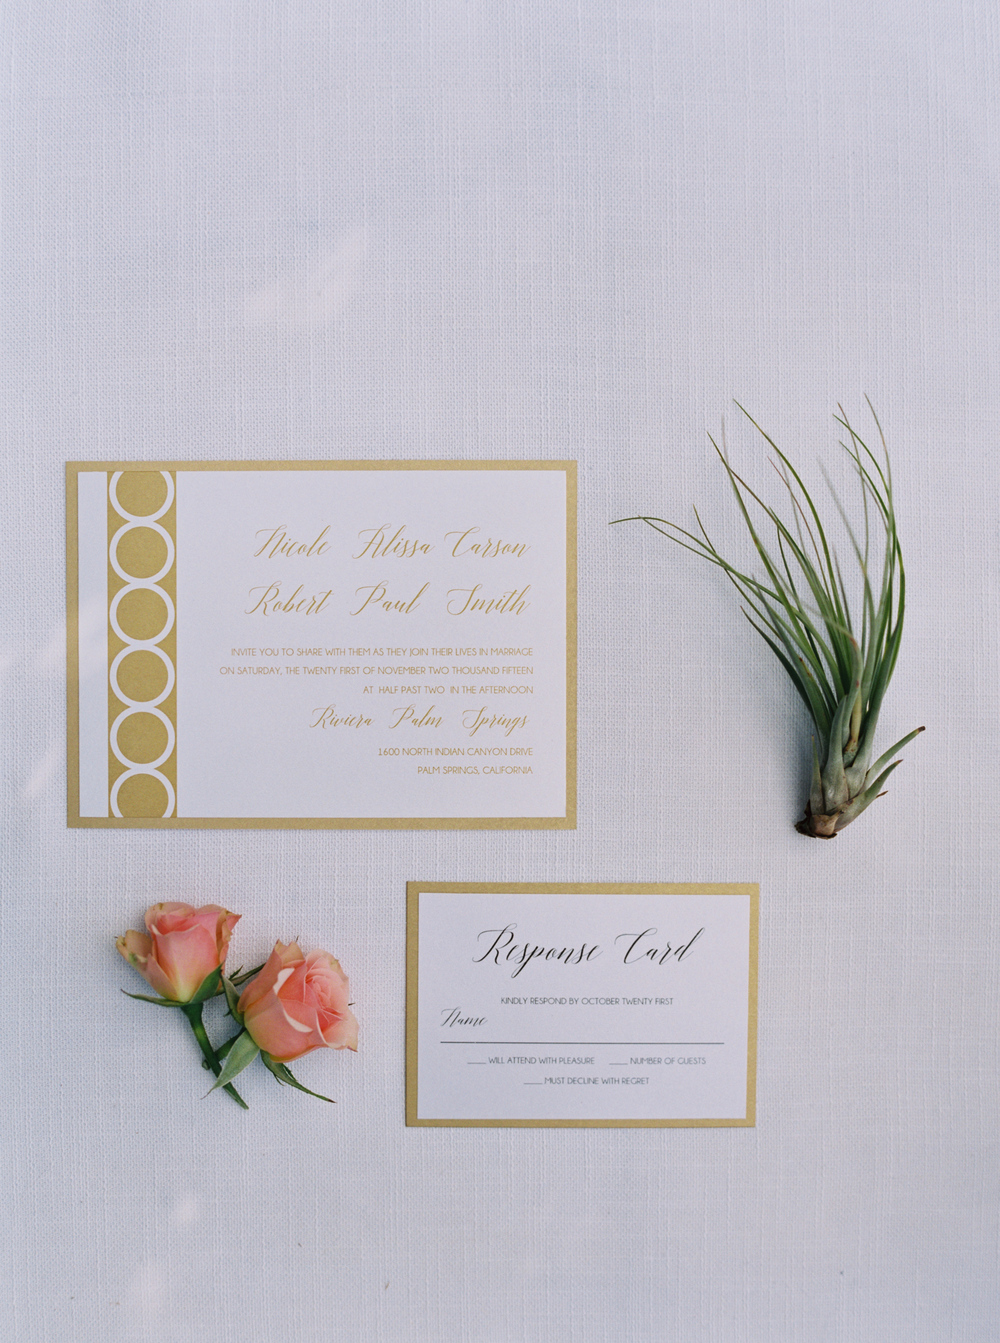 temeculaweddinginvitations.com | Wedding Inspiration at the Riviera Palm Springs | Paper Villa Stationery and Design | Geometric Wedding Ideas | Blueberry Photography